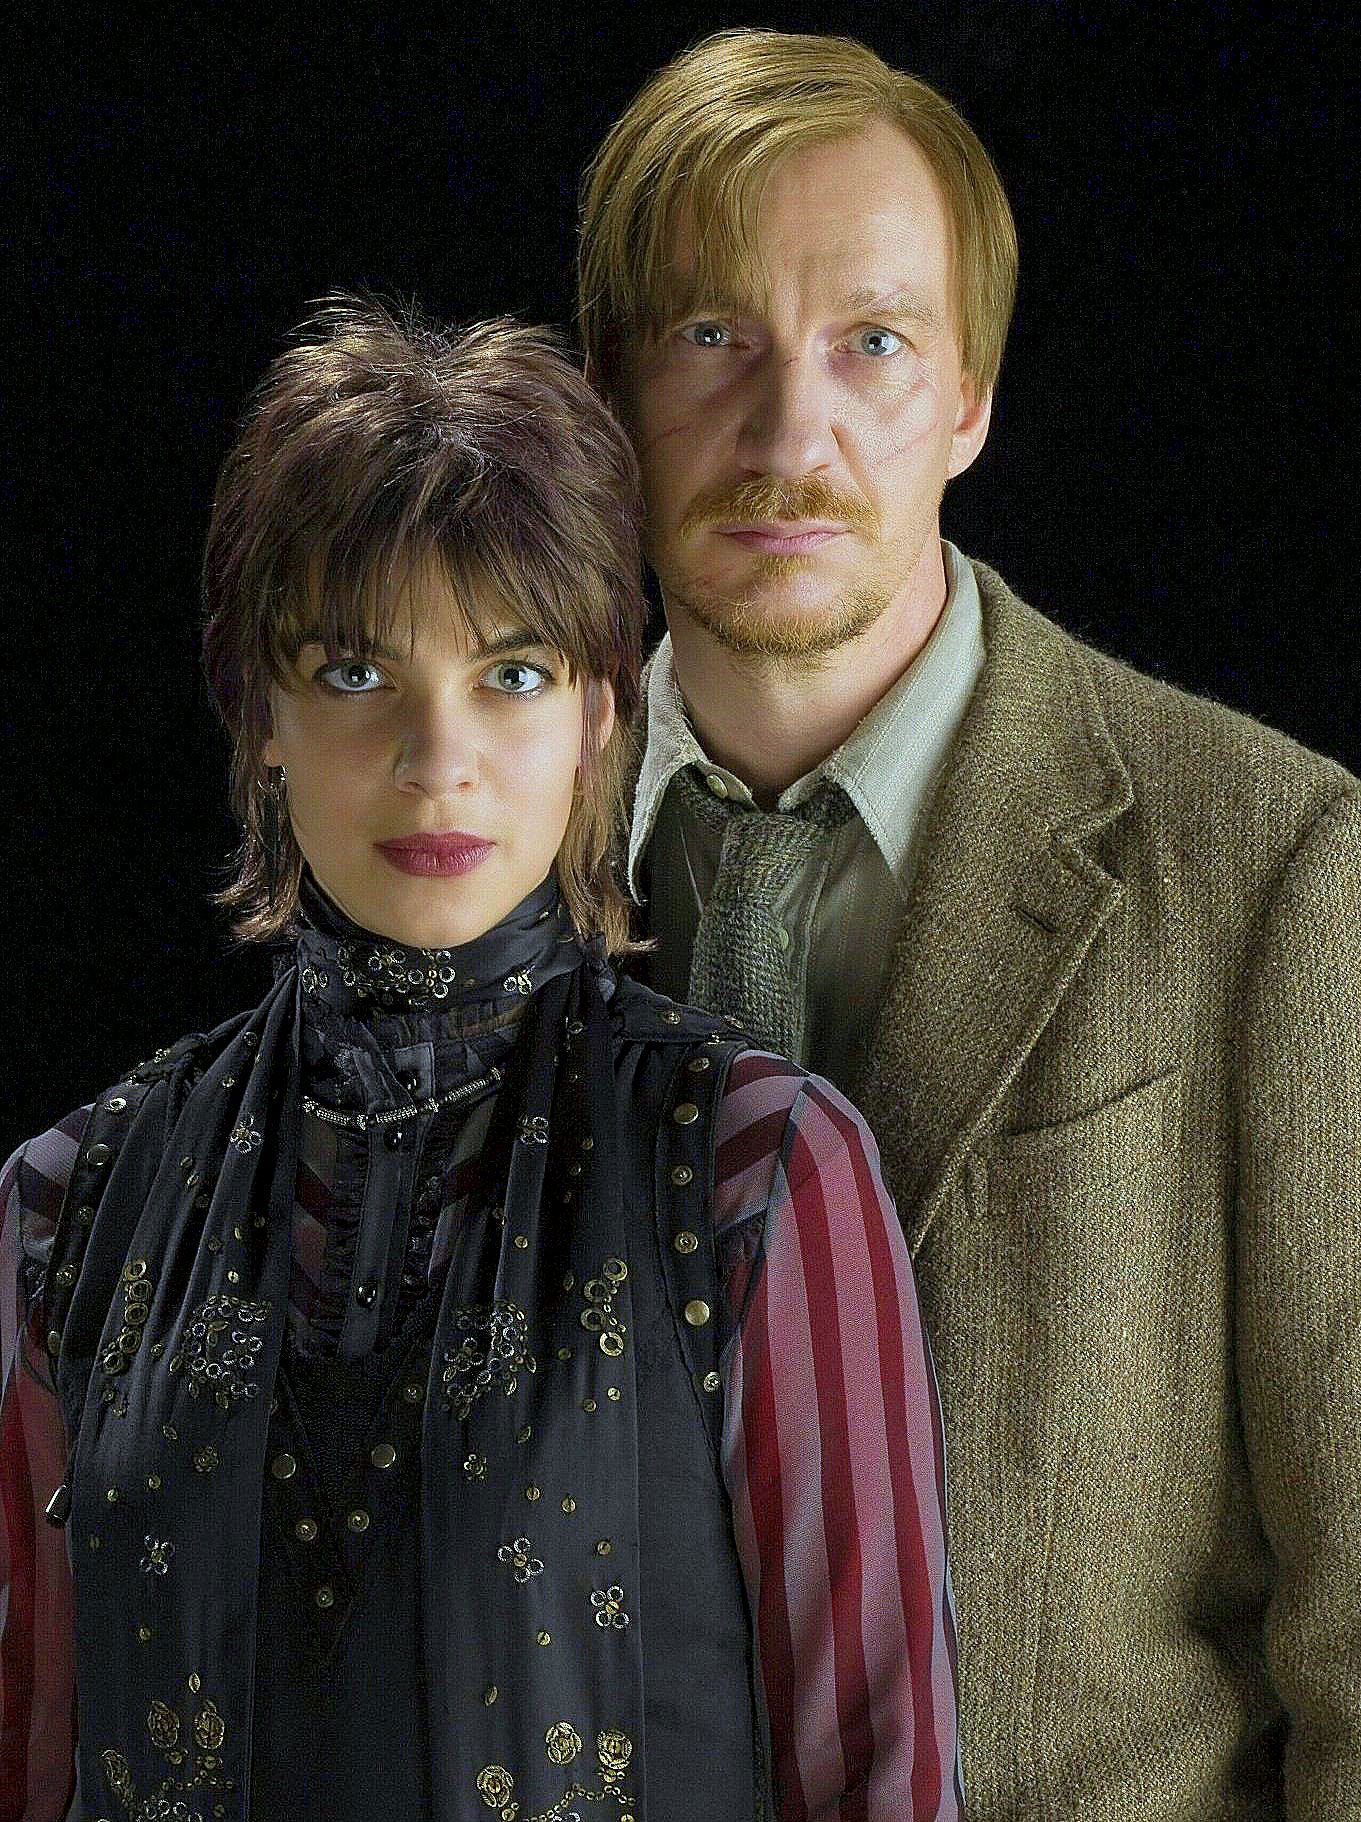 Tonks and Lupin portrait